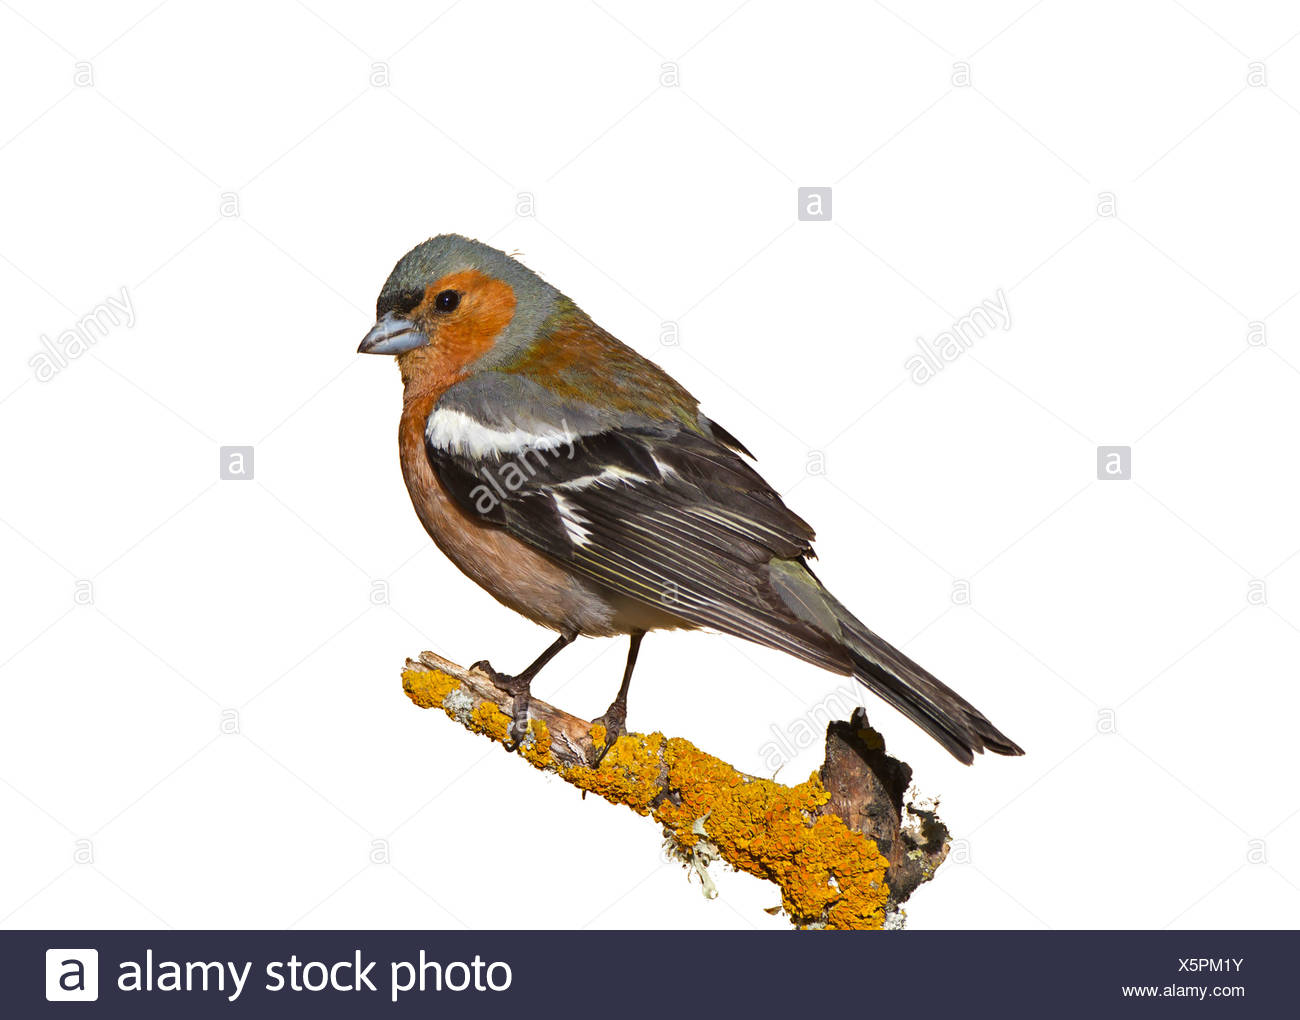 Chaffinch - Fringilla coelebs - male summer. - Stock Image